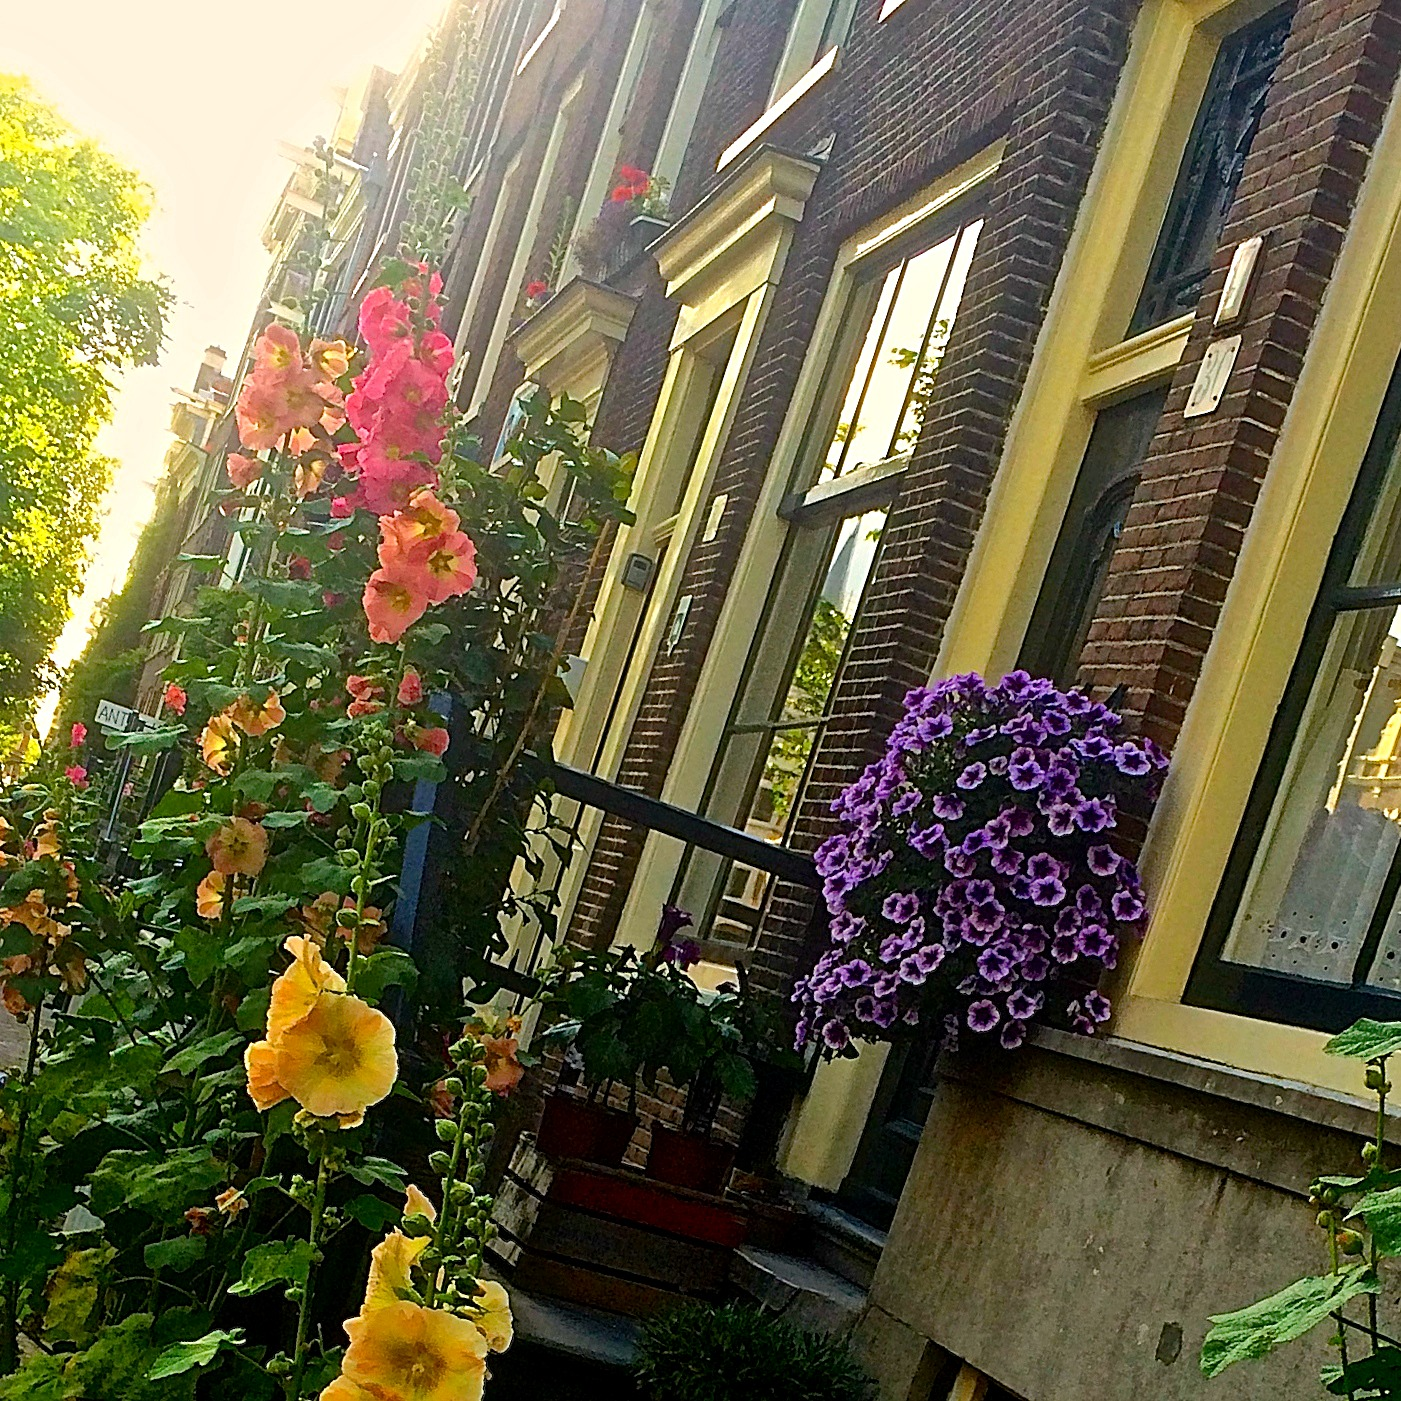 flowers in the street in amsterdam